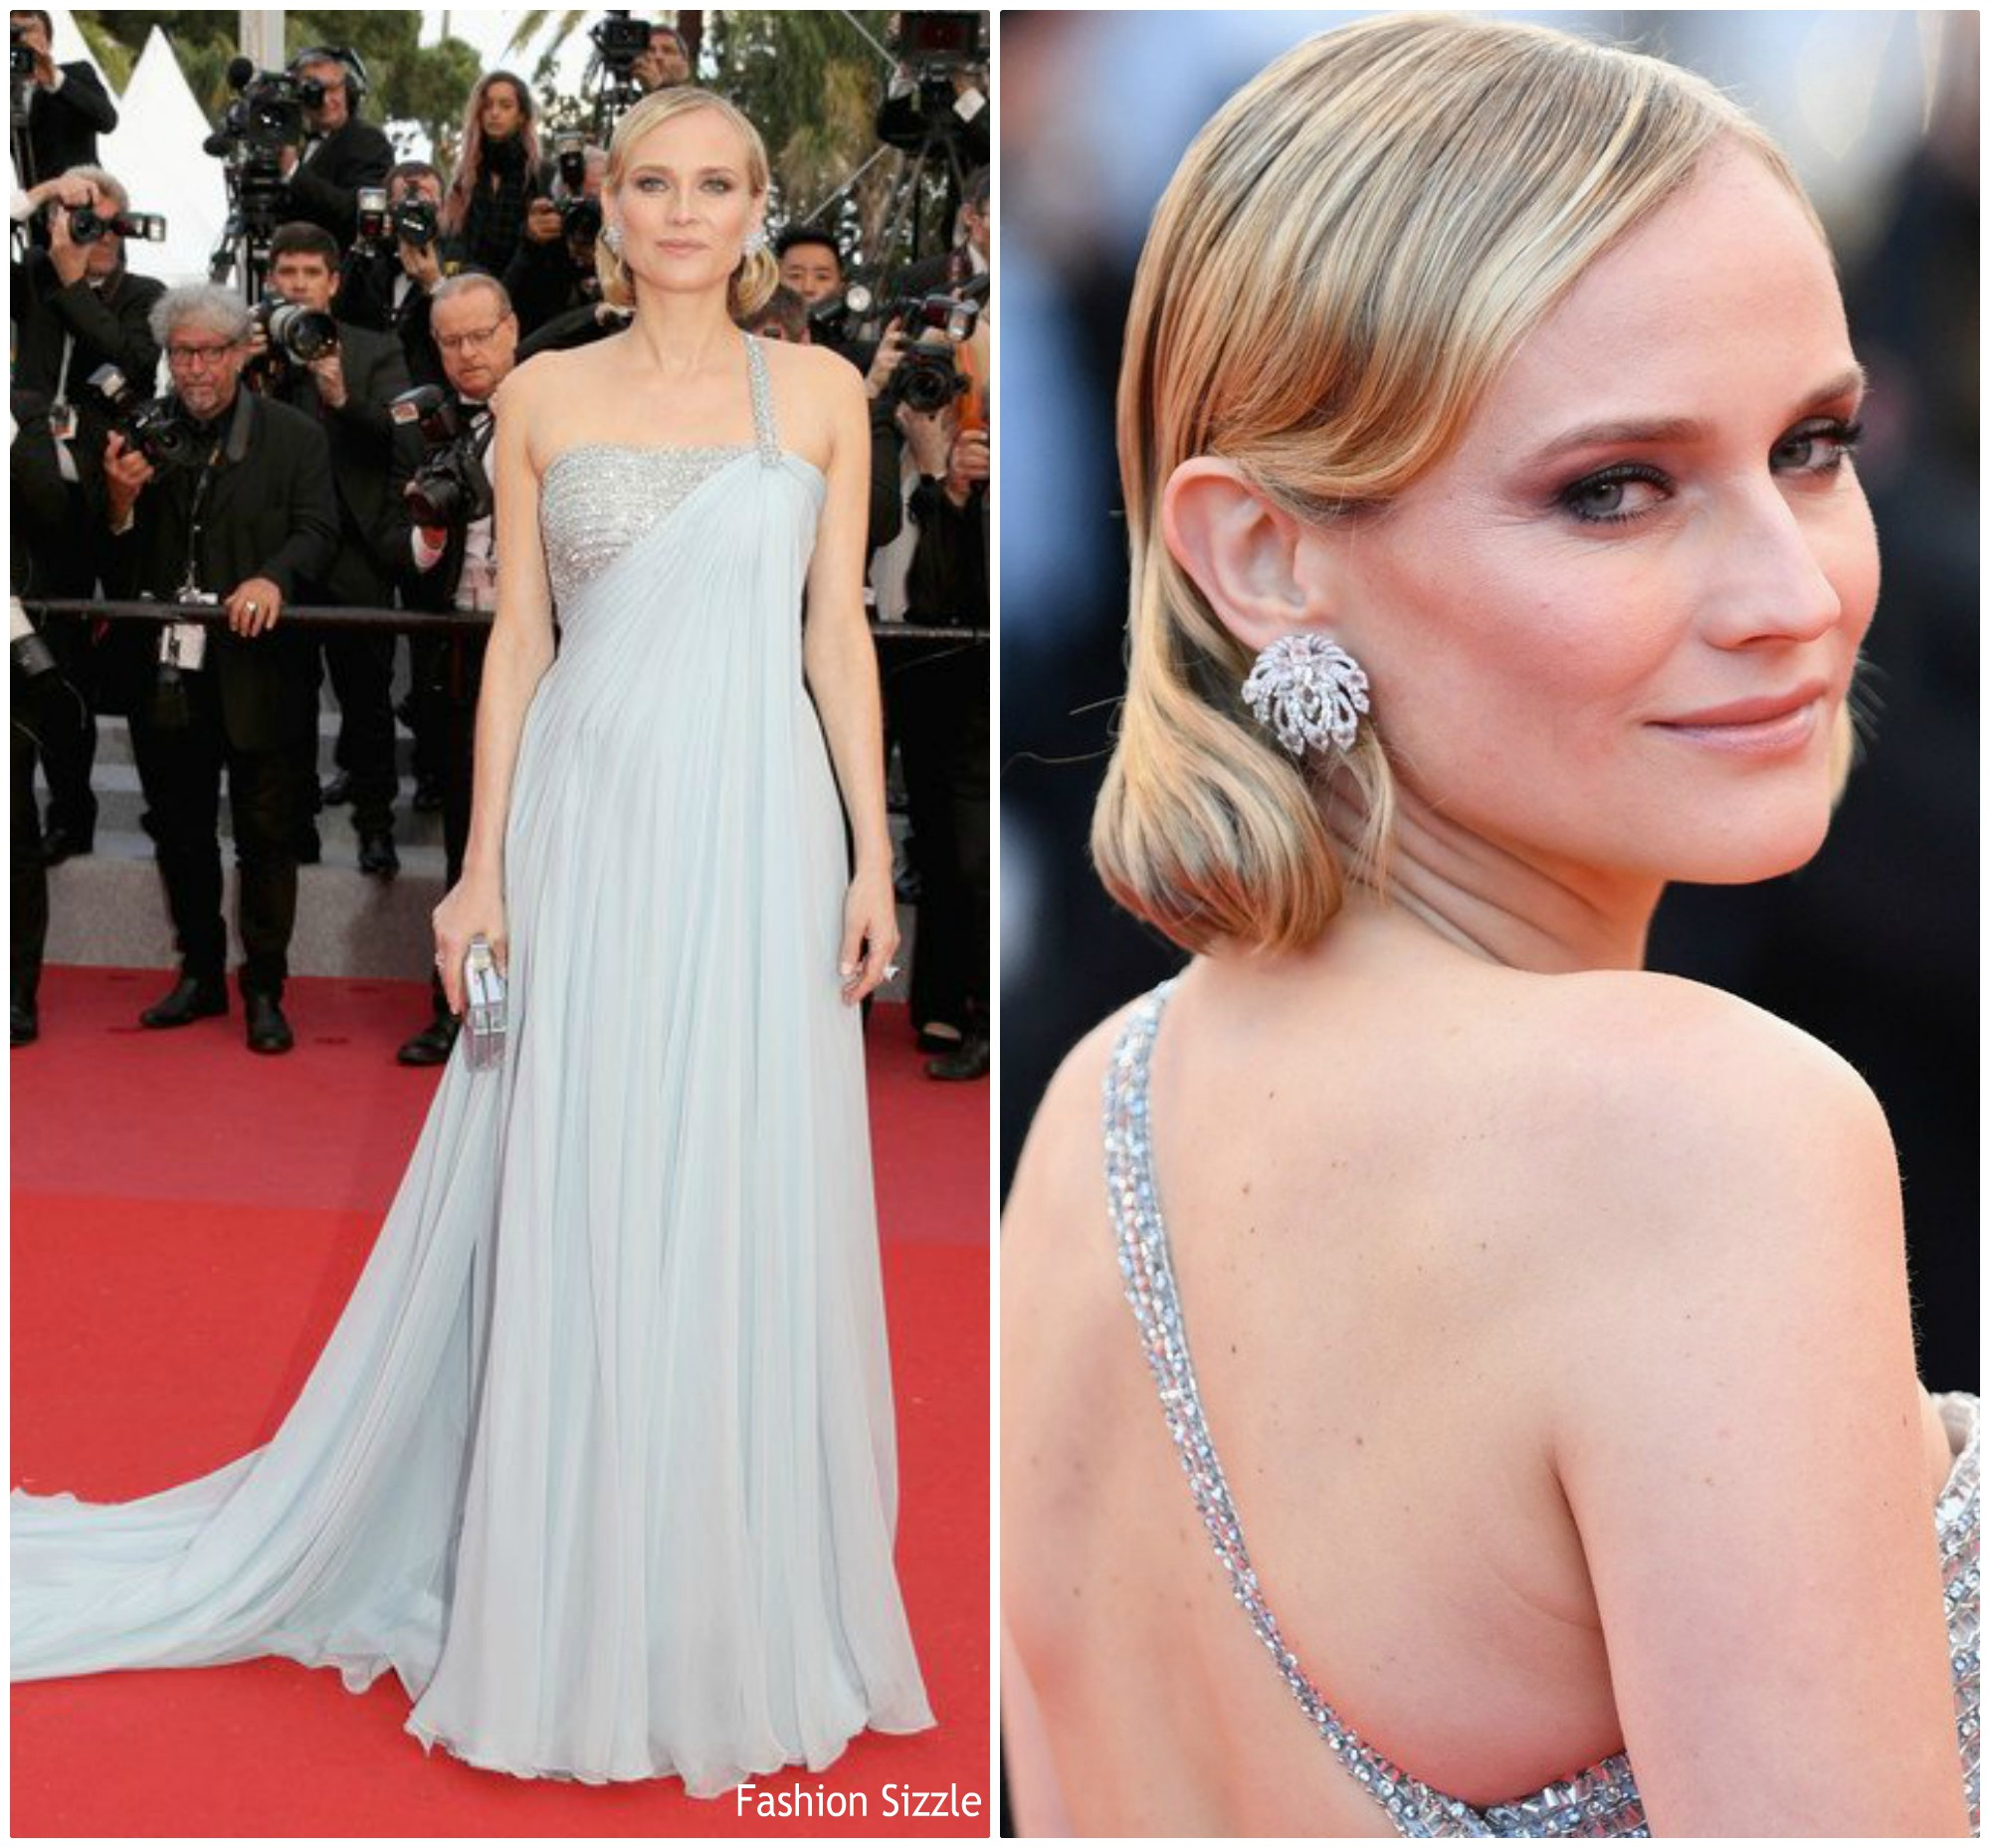 diane-kruger-in-armani-prive-sink-or-swim-le-grand-bain-cannes-film-festival-premiere